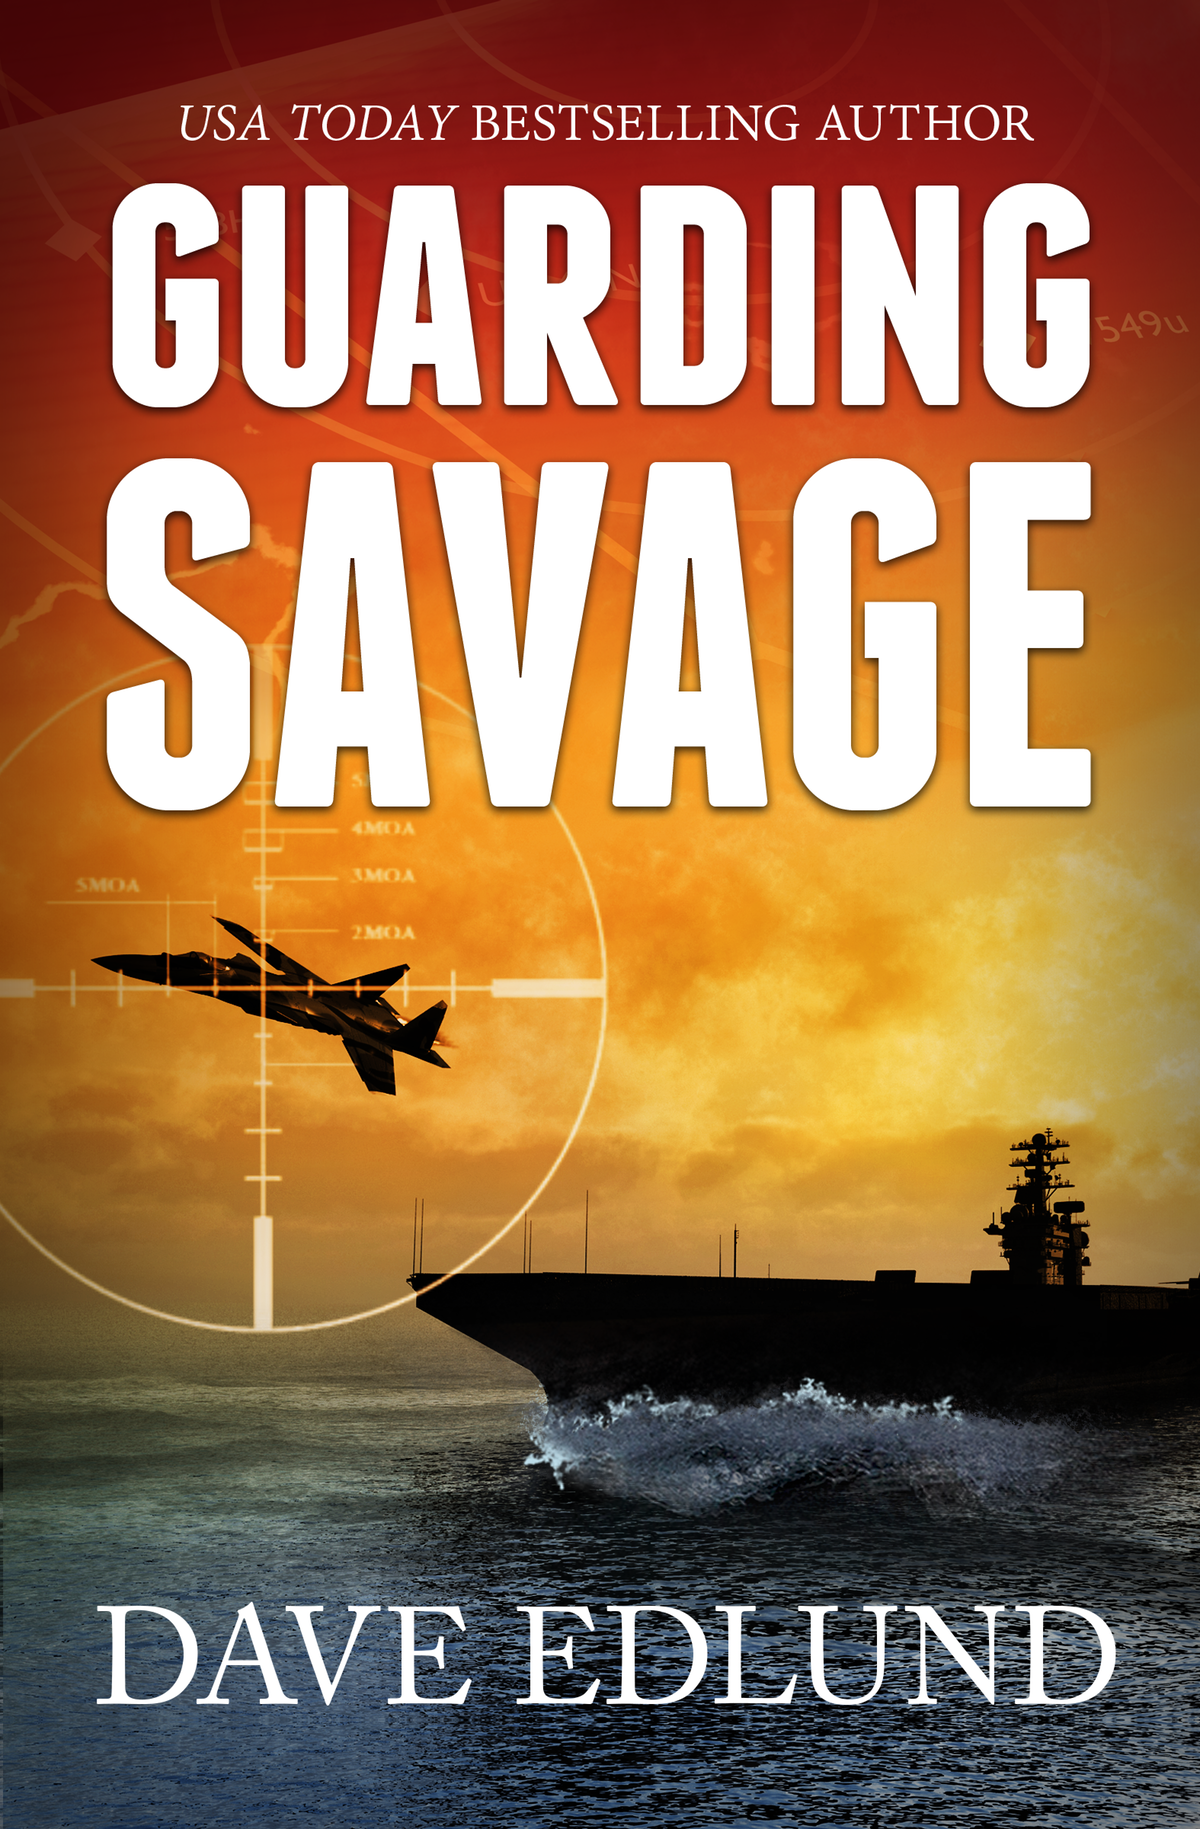 Add motion to water around ship on book cover